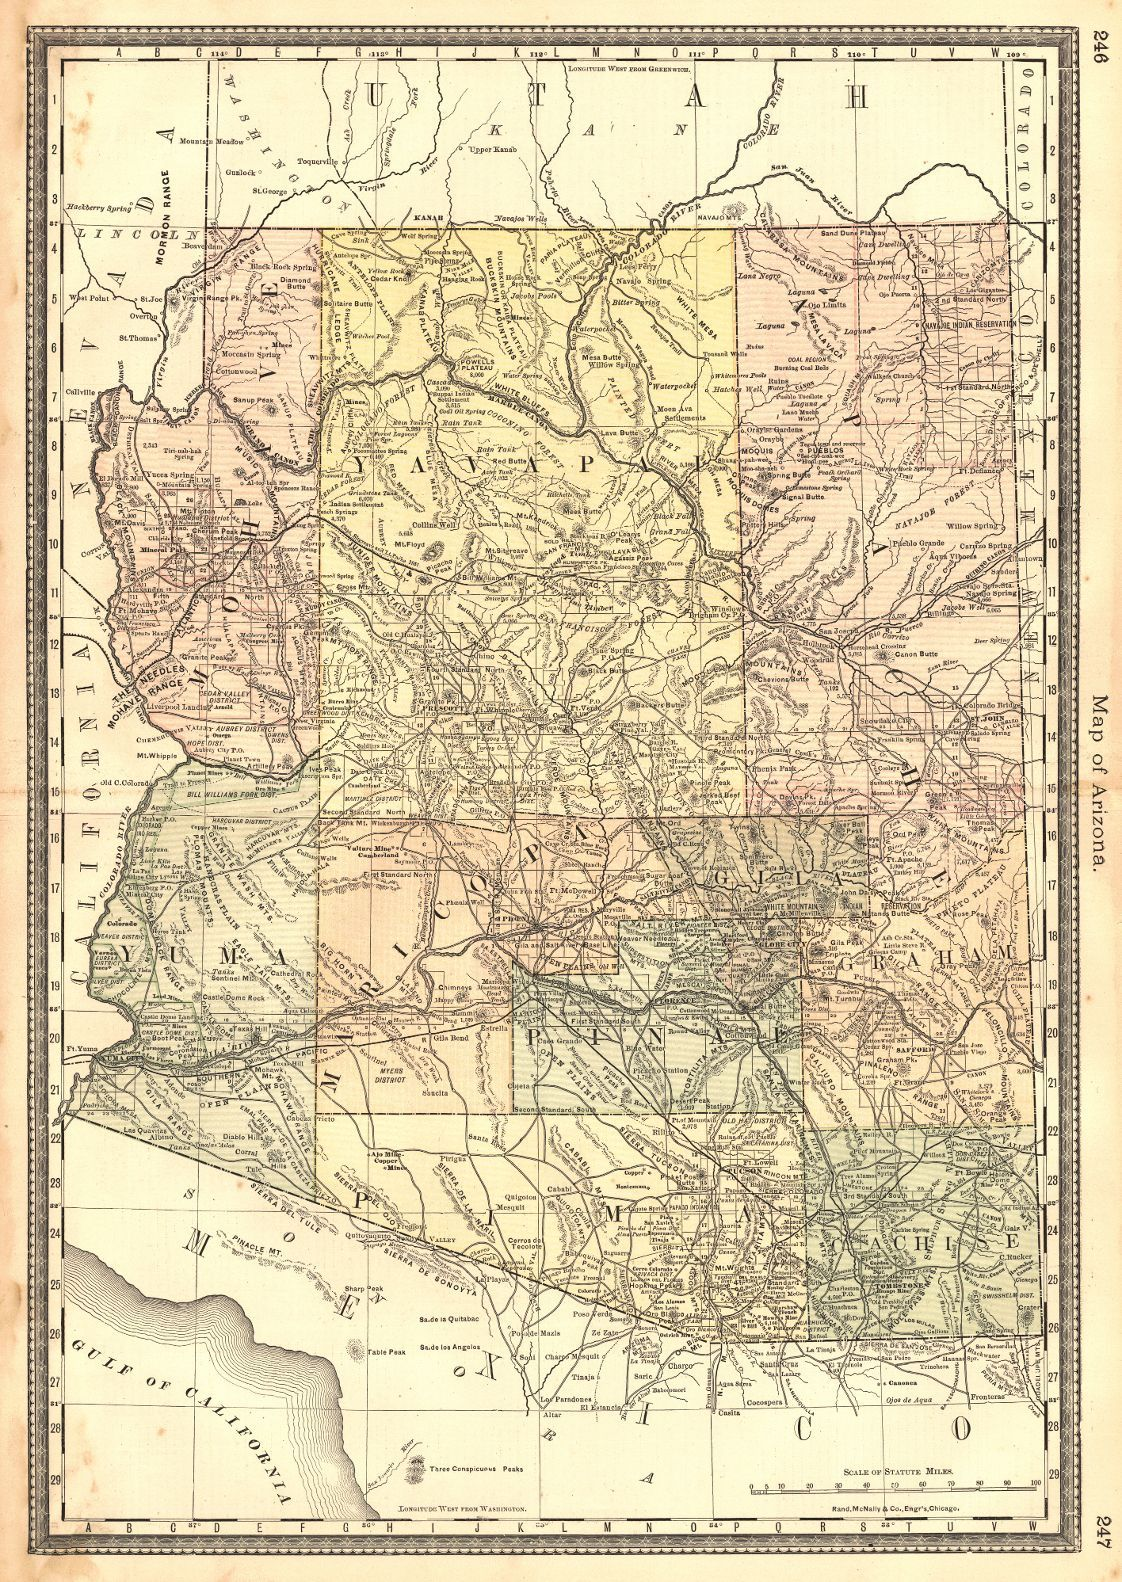 County Map Of Arizona And New Mexico Mitchell SA Tucson - Map of arizona and new mexico